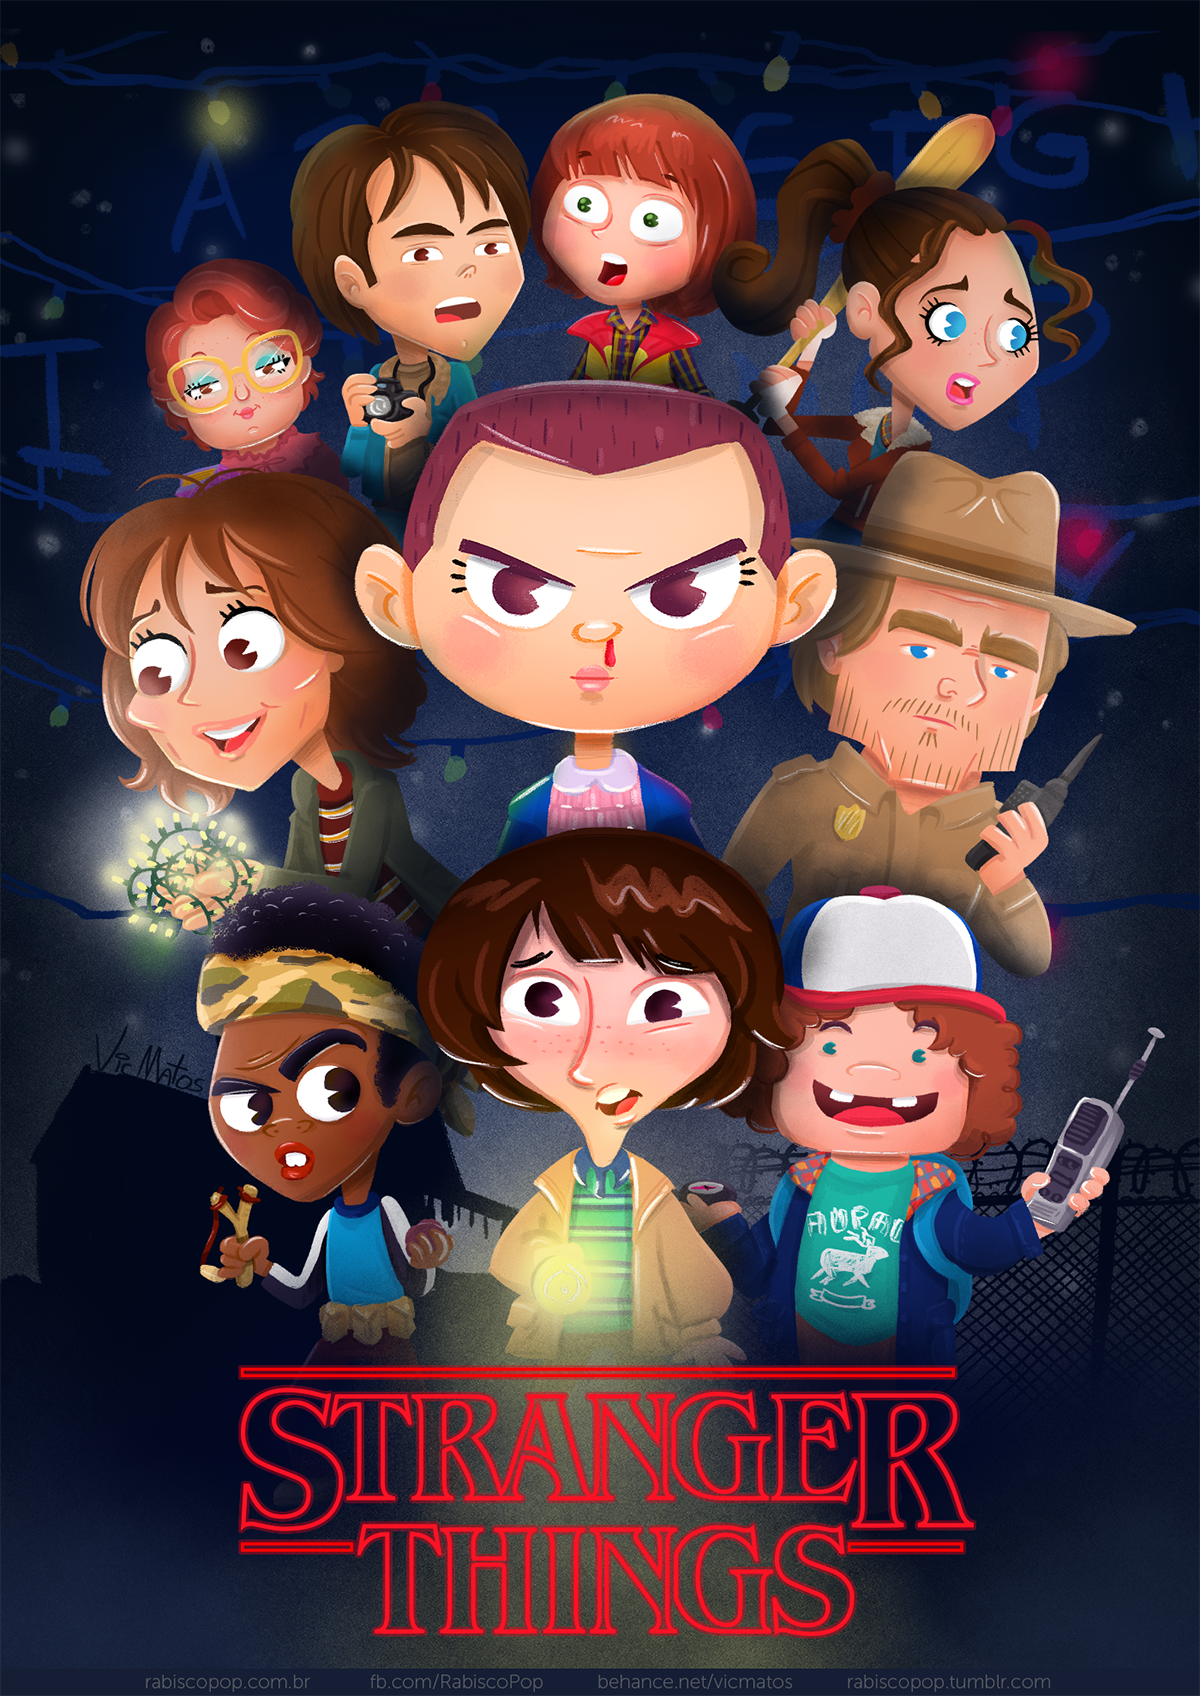 Stranger Things Character Design Amp Illustration On Behance